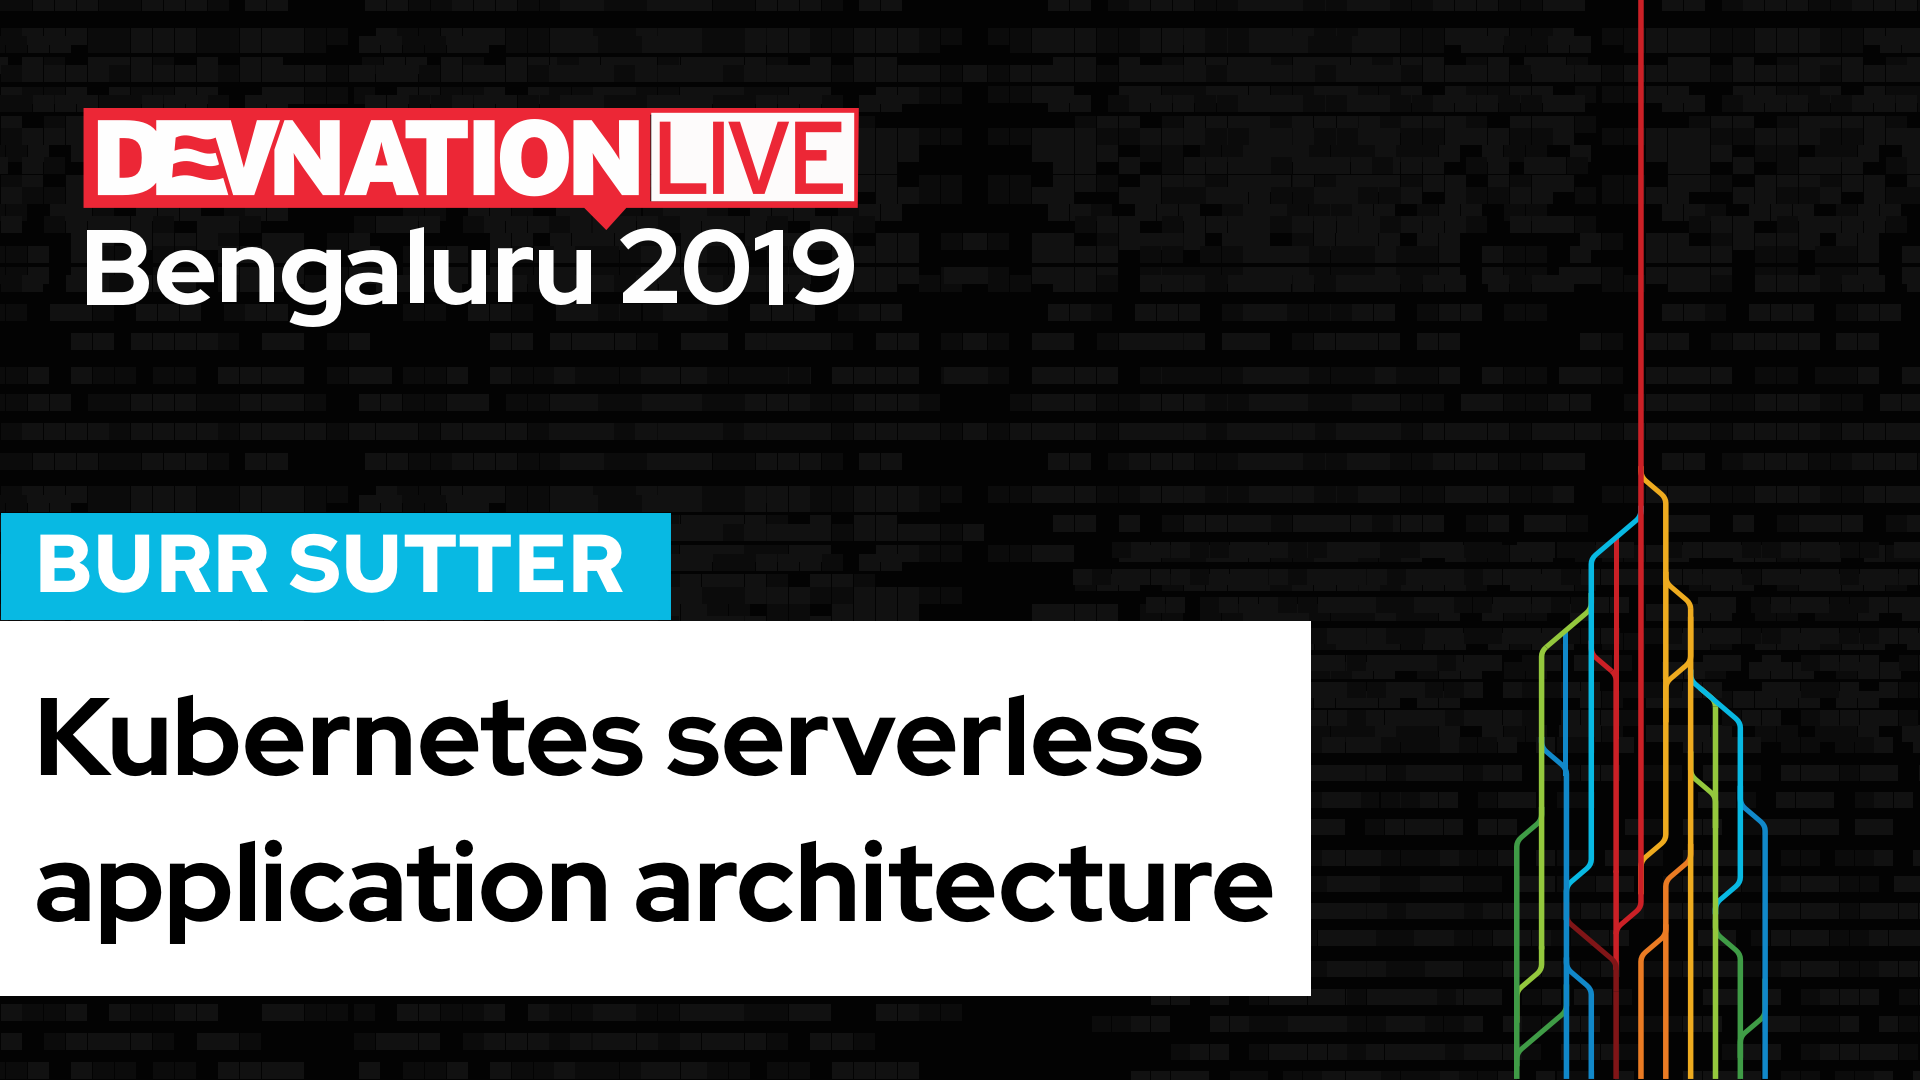 DevNation Live Bengaluru: Kubernetes serverless application architecture